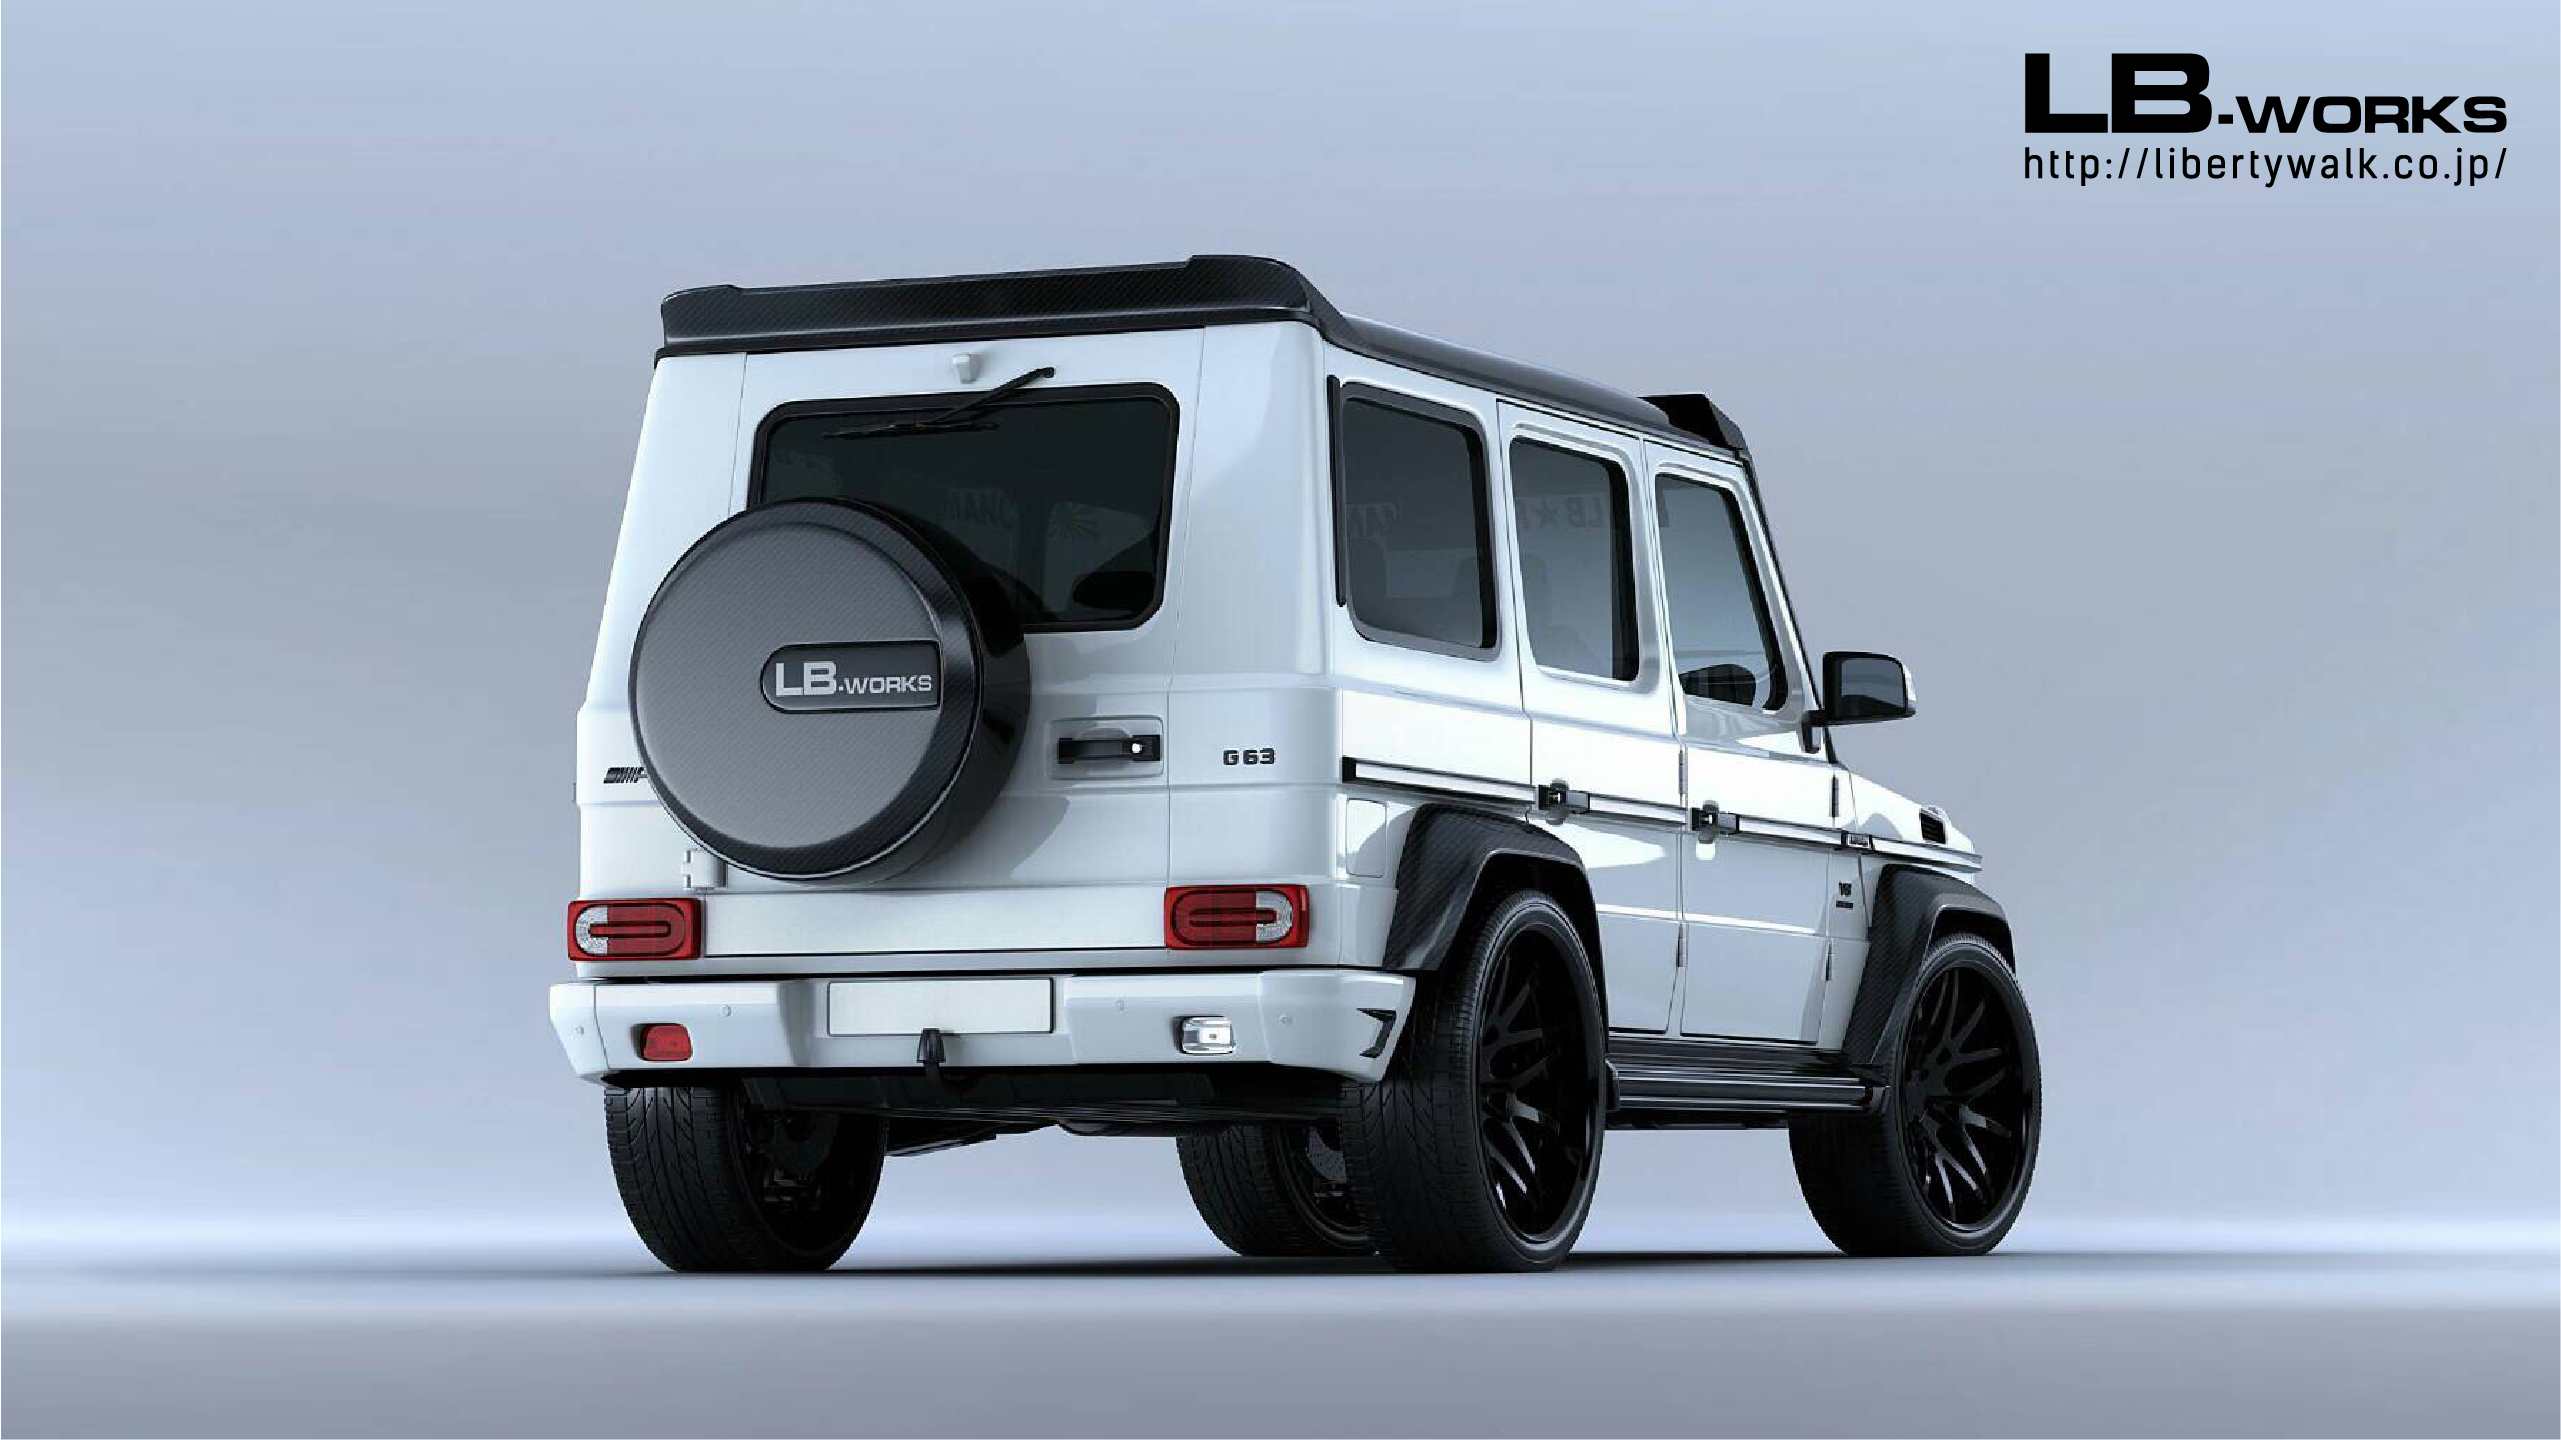 Liberty Walk Has A Body Kit For The Mercedes G-Class And The Suzuki